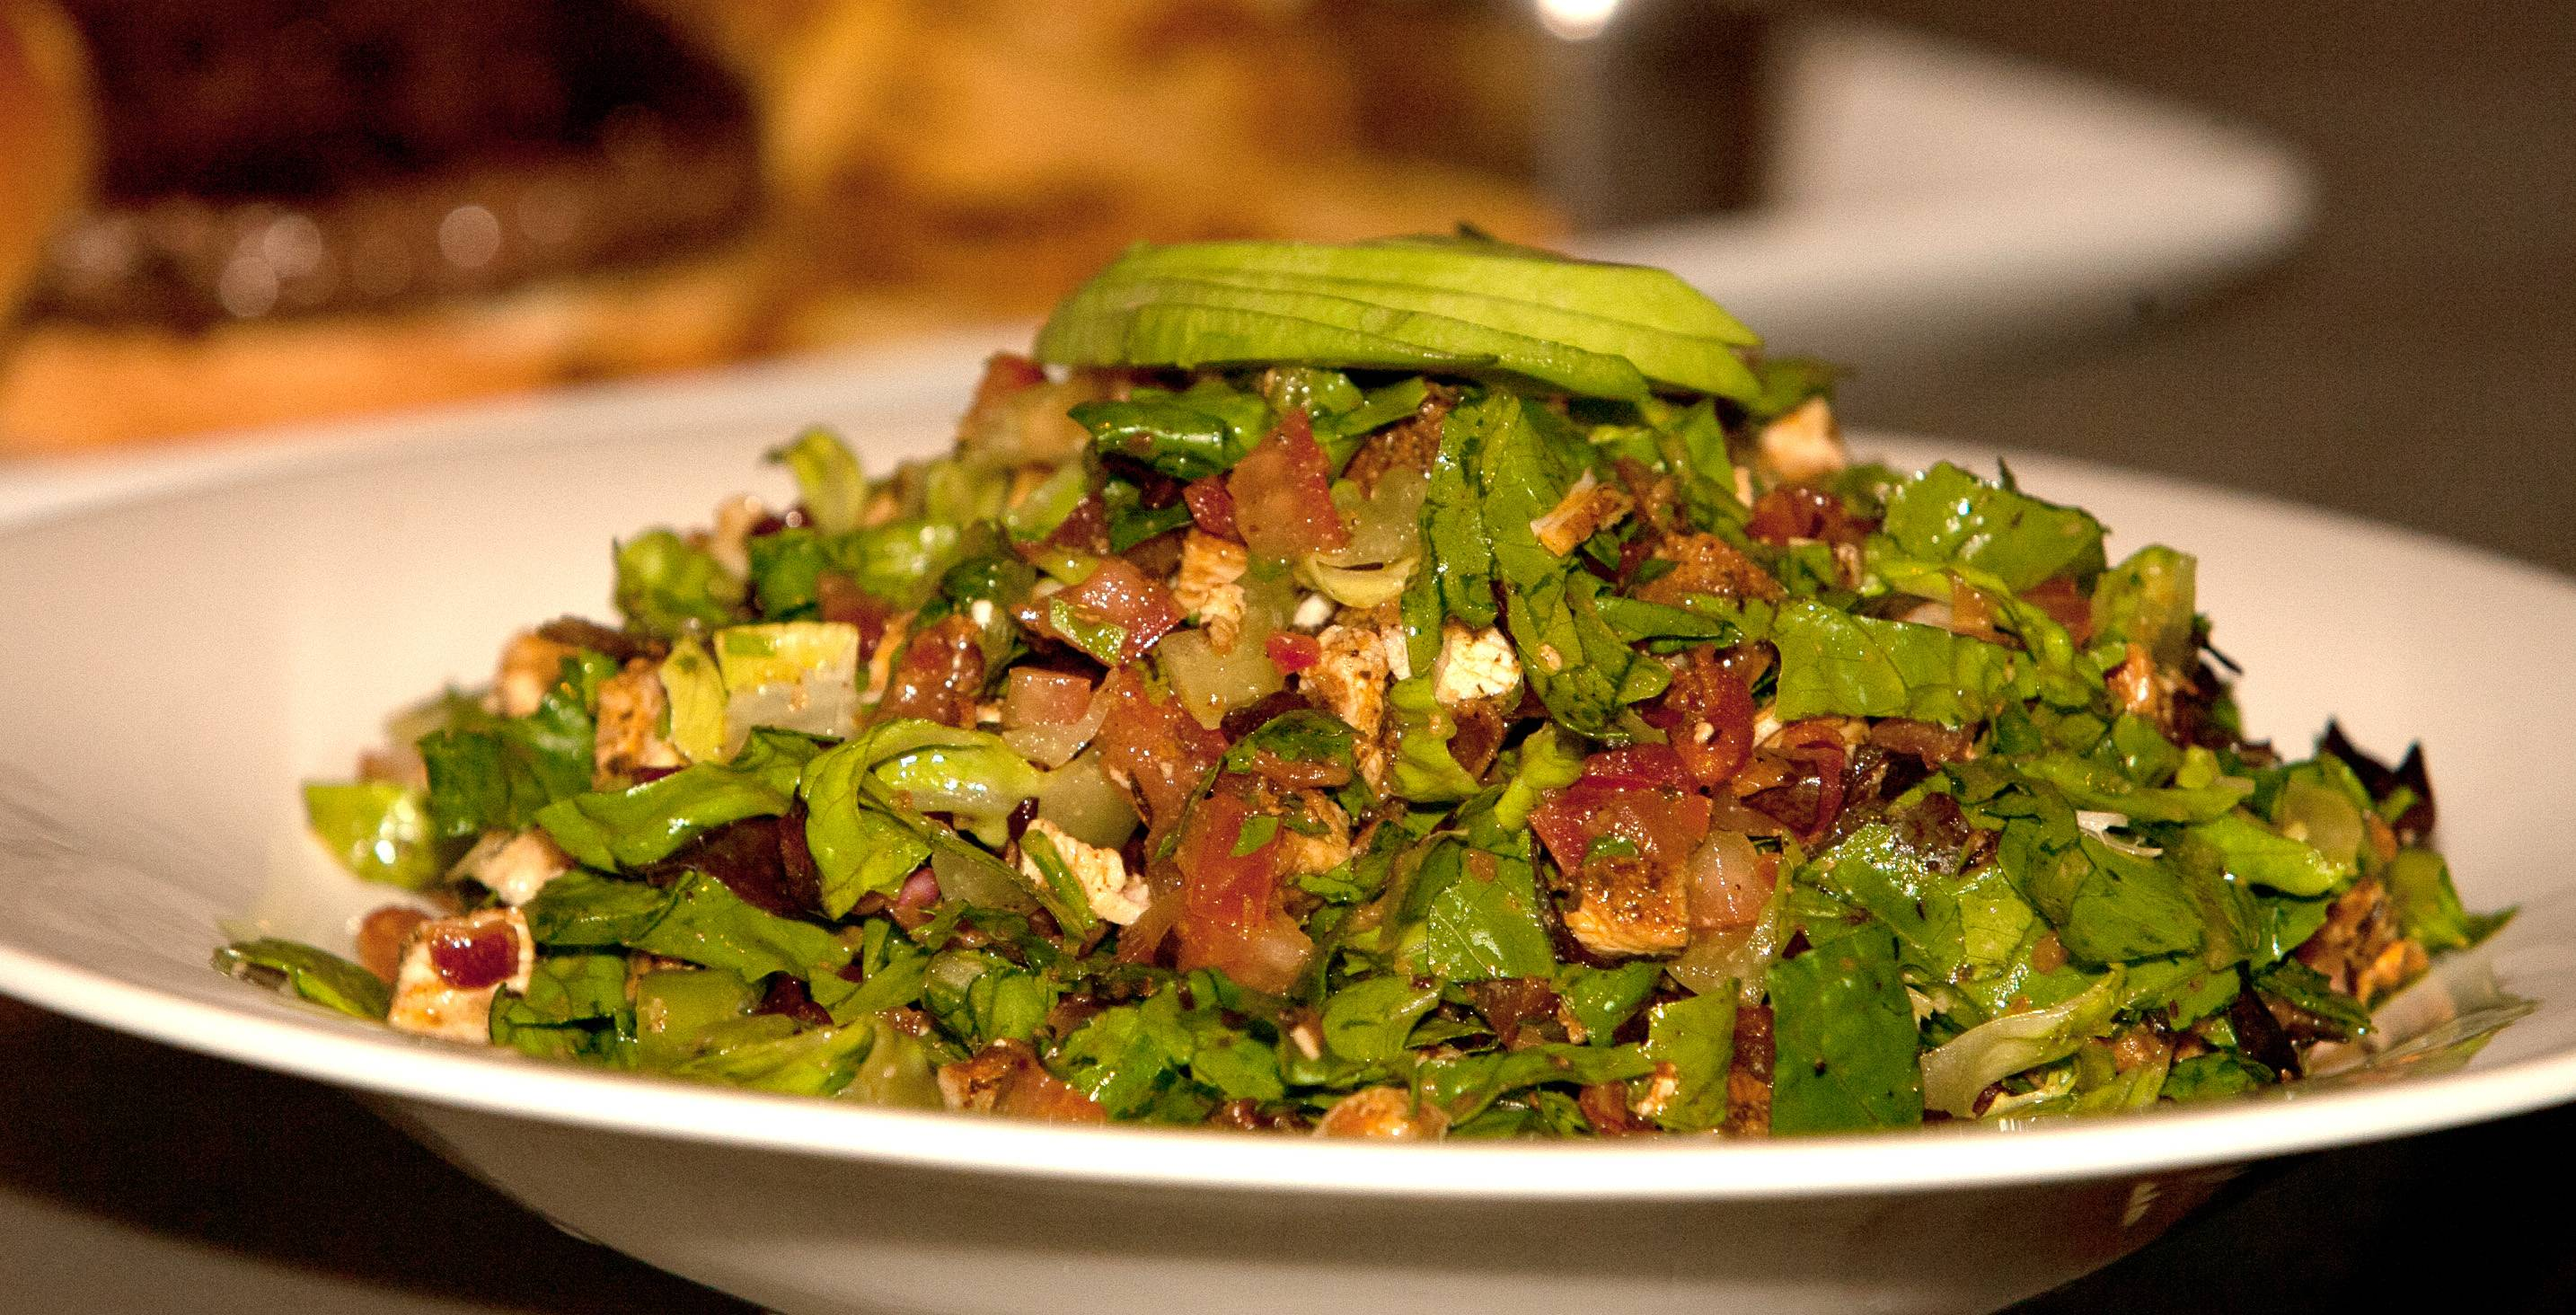 The chopped salad at Neat includes chicken, bacon and avocado.